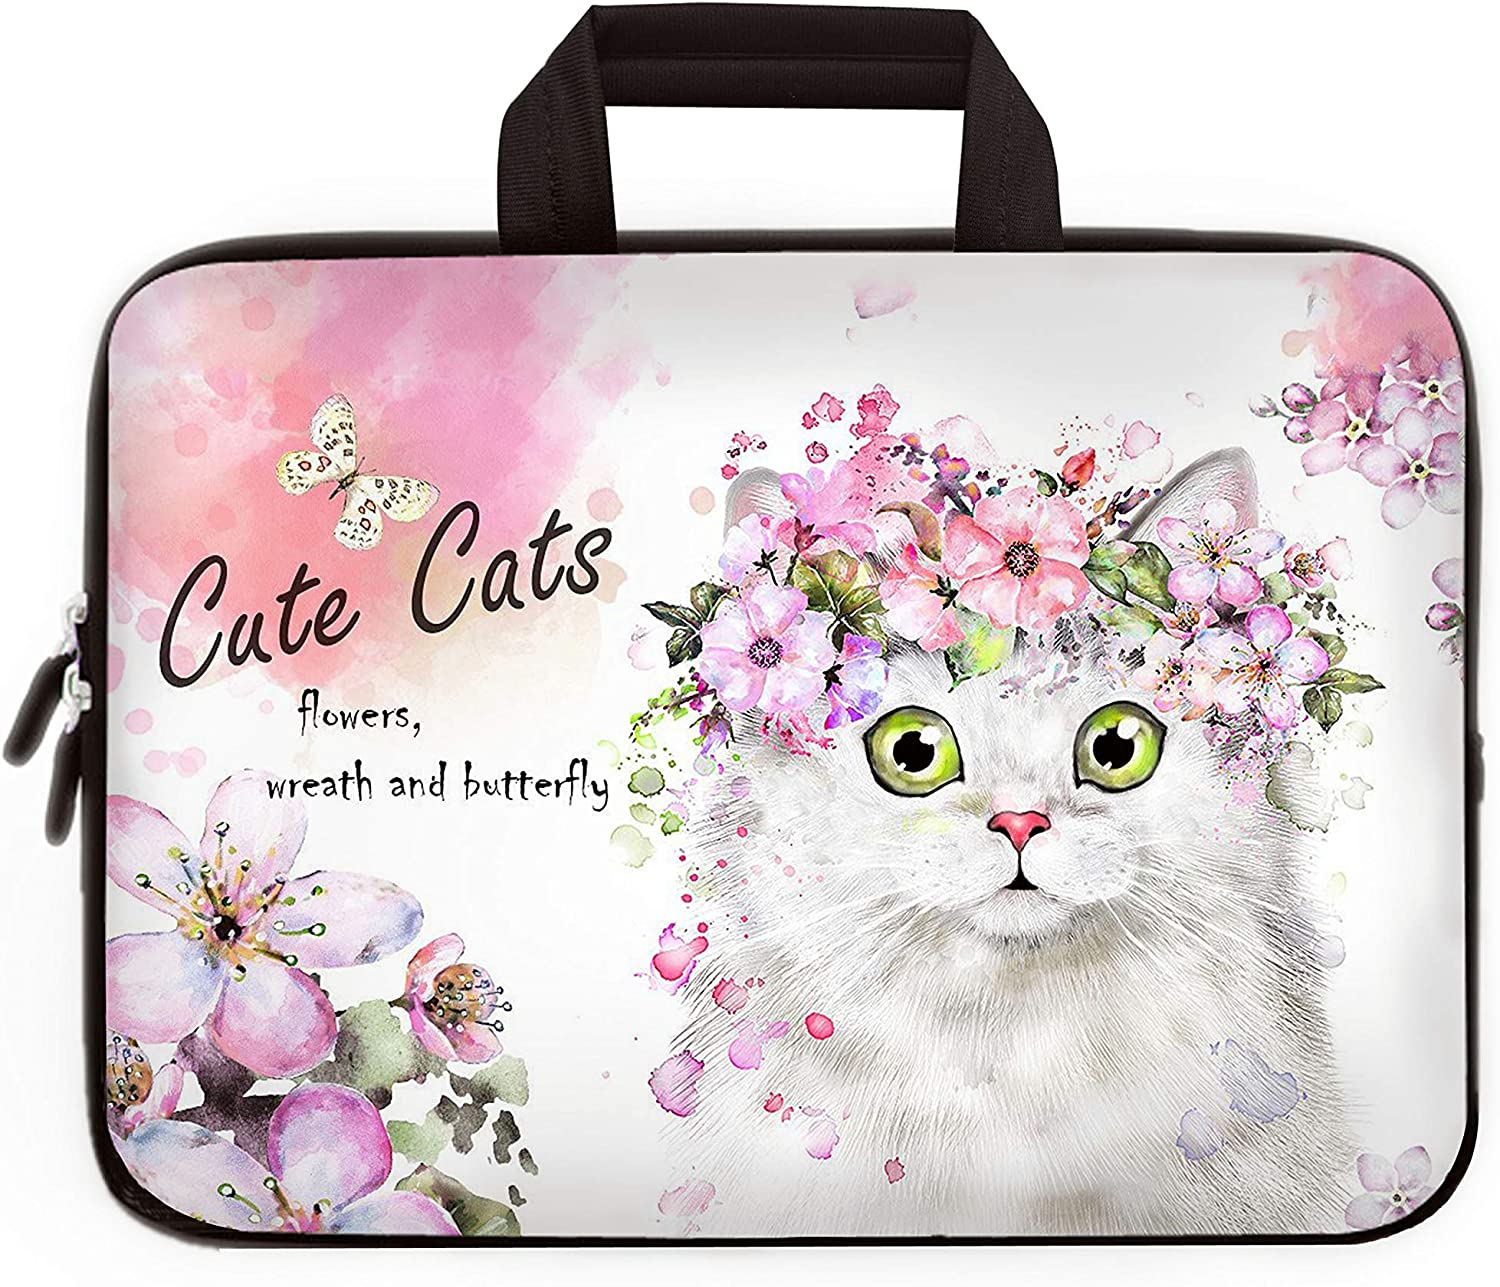 """hdaba 14"""" - 15.6"""" Inch Laptop Sleeve Case Protective Bag Carrying Case with Handle for 14-15.6 Inch Laptop Compatible with Chromebook 15 HP Pavilion Toshiba Dell (14"""" 15"""" 15.4"""" 15.6"""" inch, LP15-Cat)"""